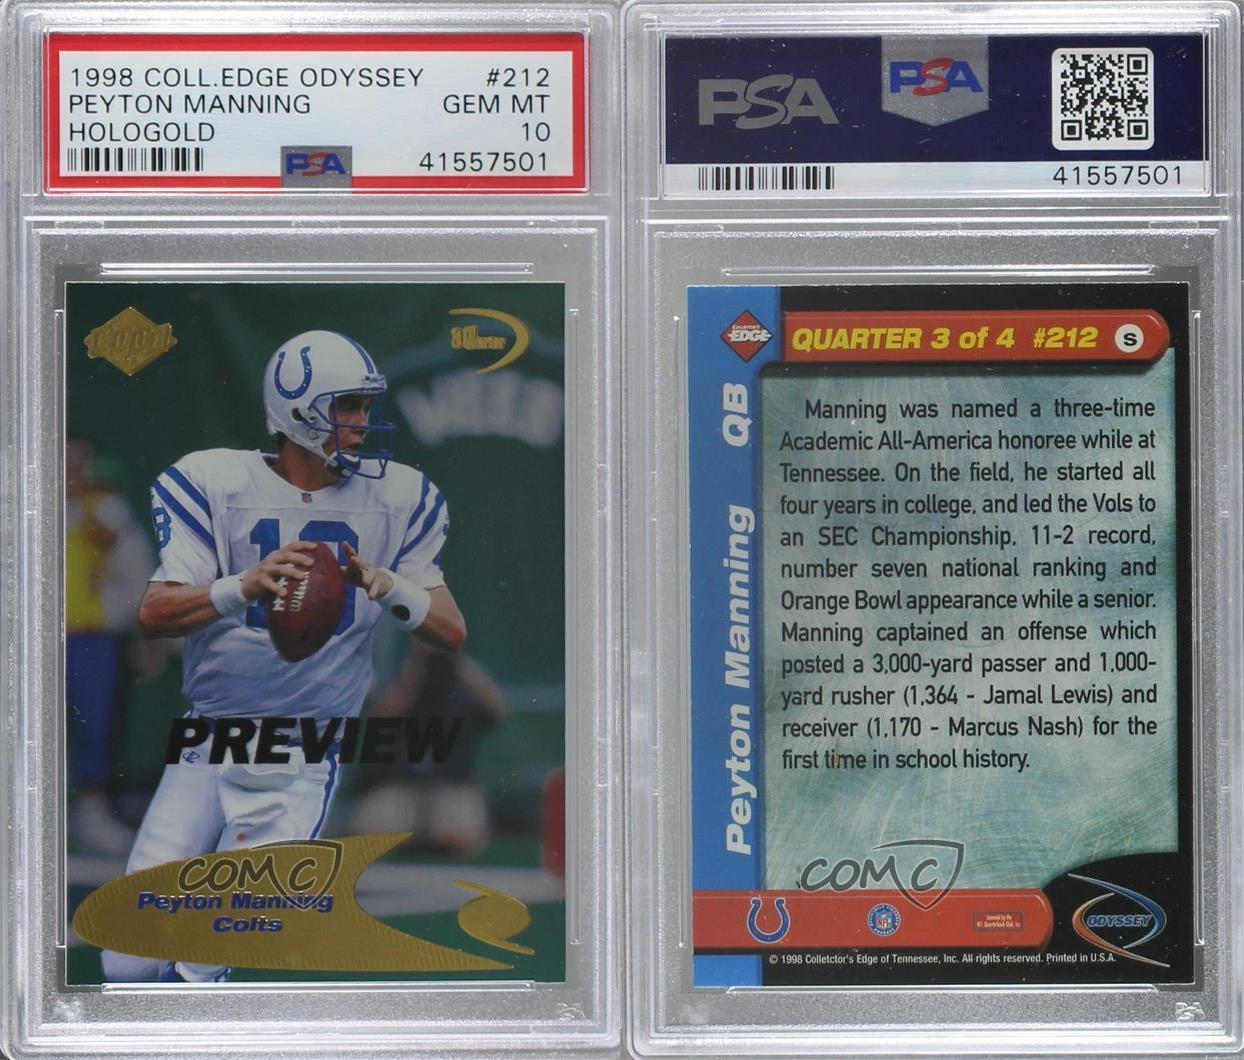 1998 Collector's Edge Odyssey Preview #212 Peyton Manning